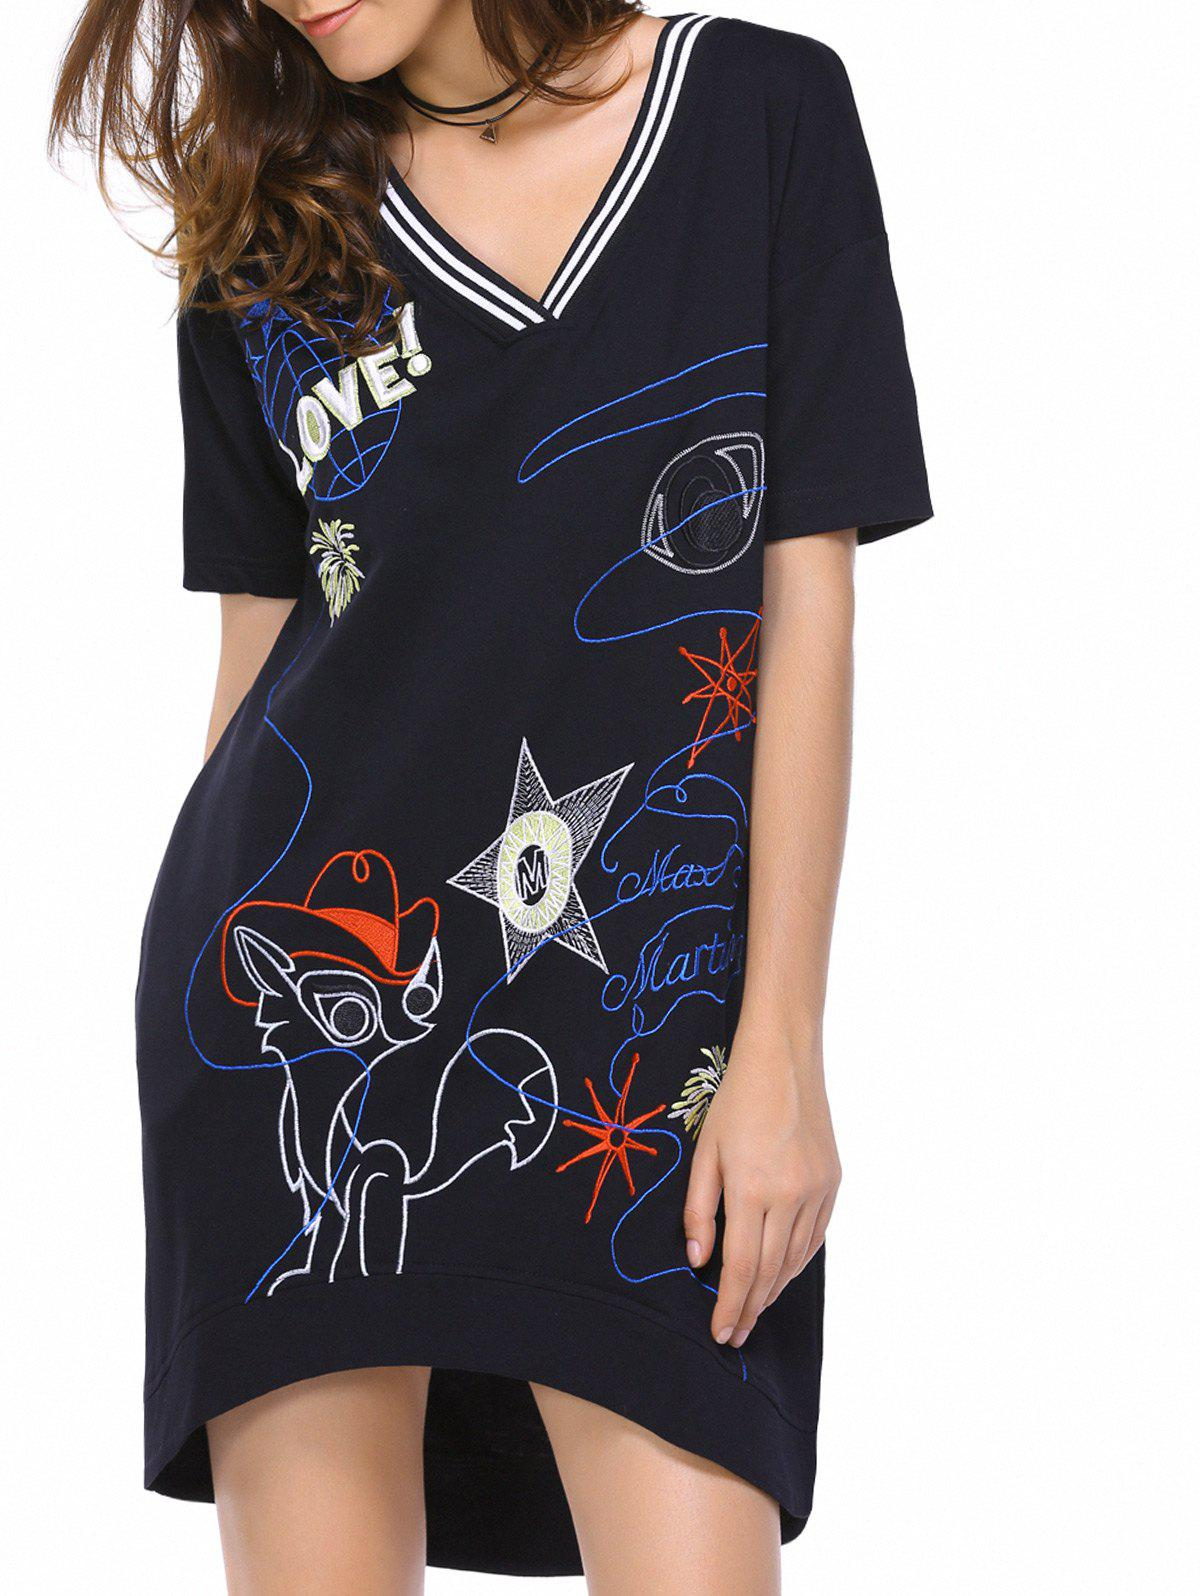 Casual Women's Short Sleeve V-Neck Embroidery Design Dress - BLACK S